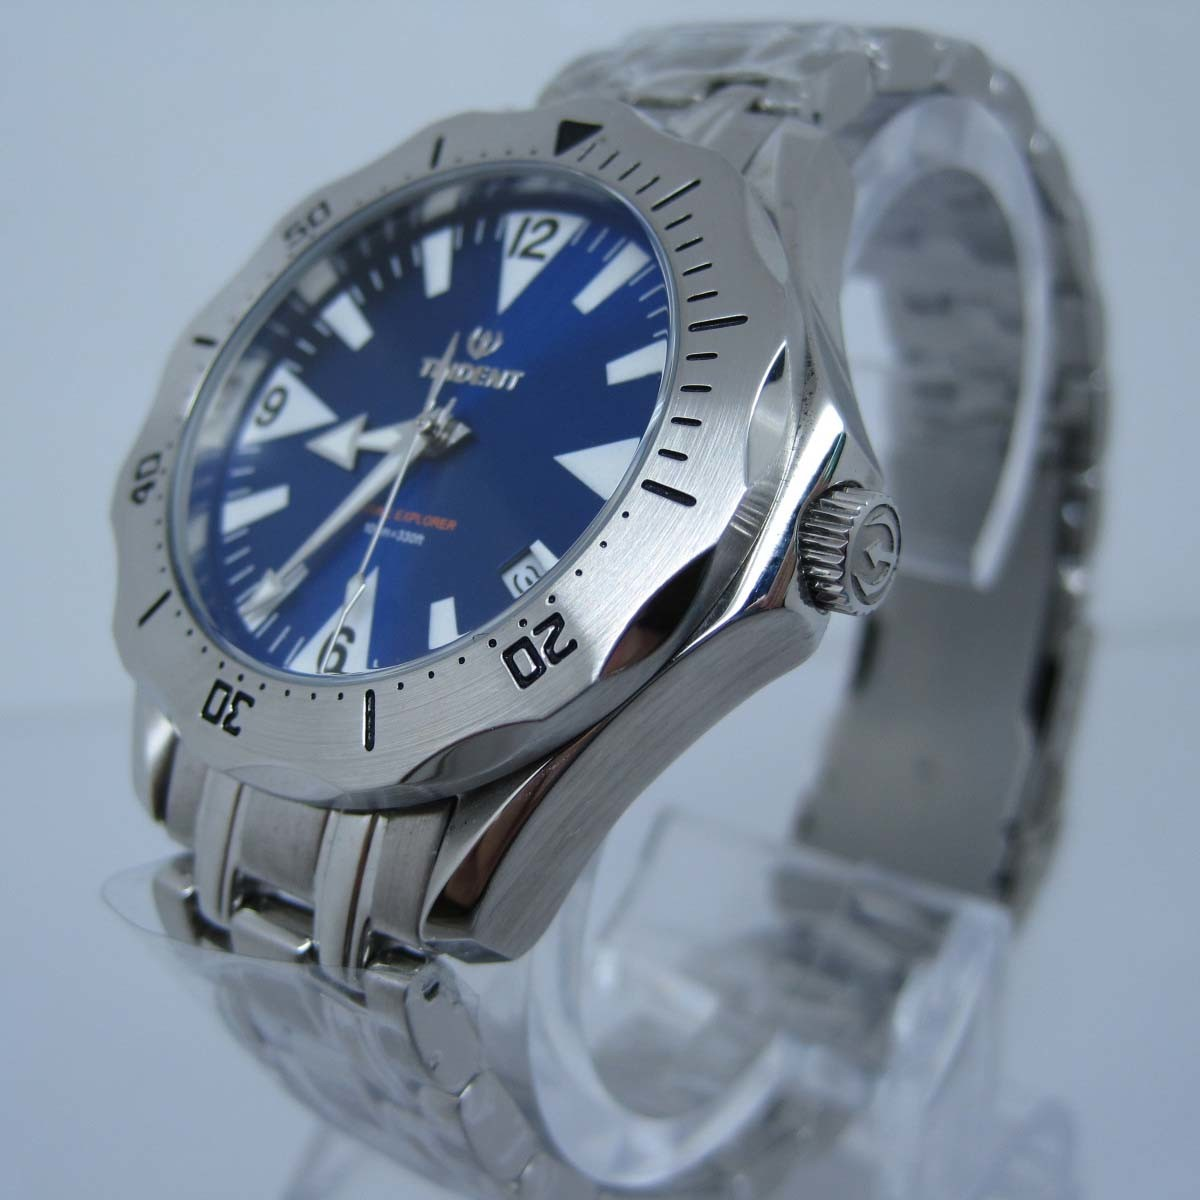 Stainless Steel Watch, Automatic Watch (JA-15003)